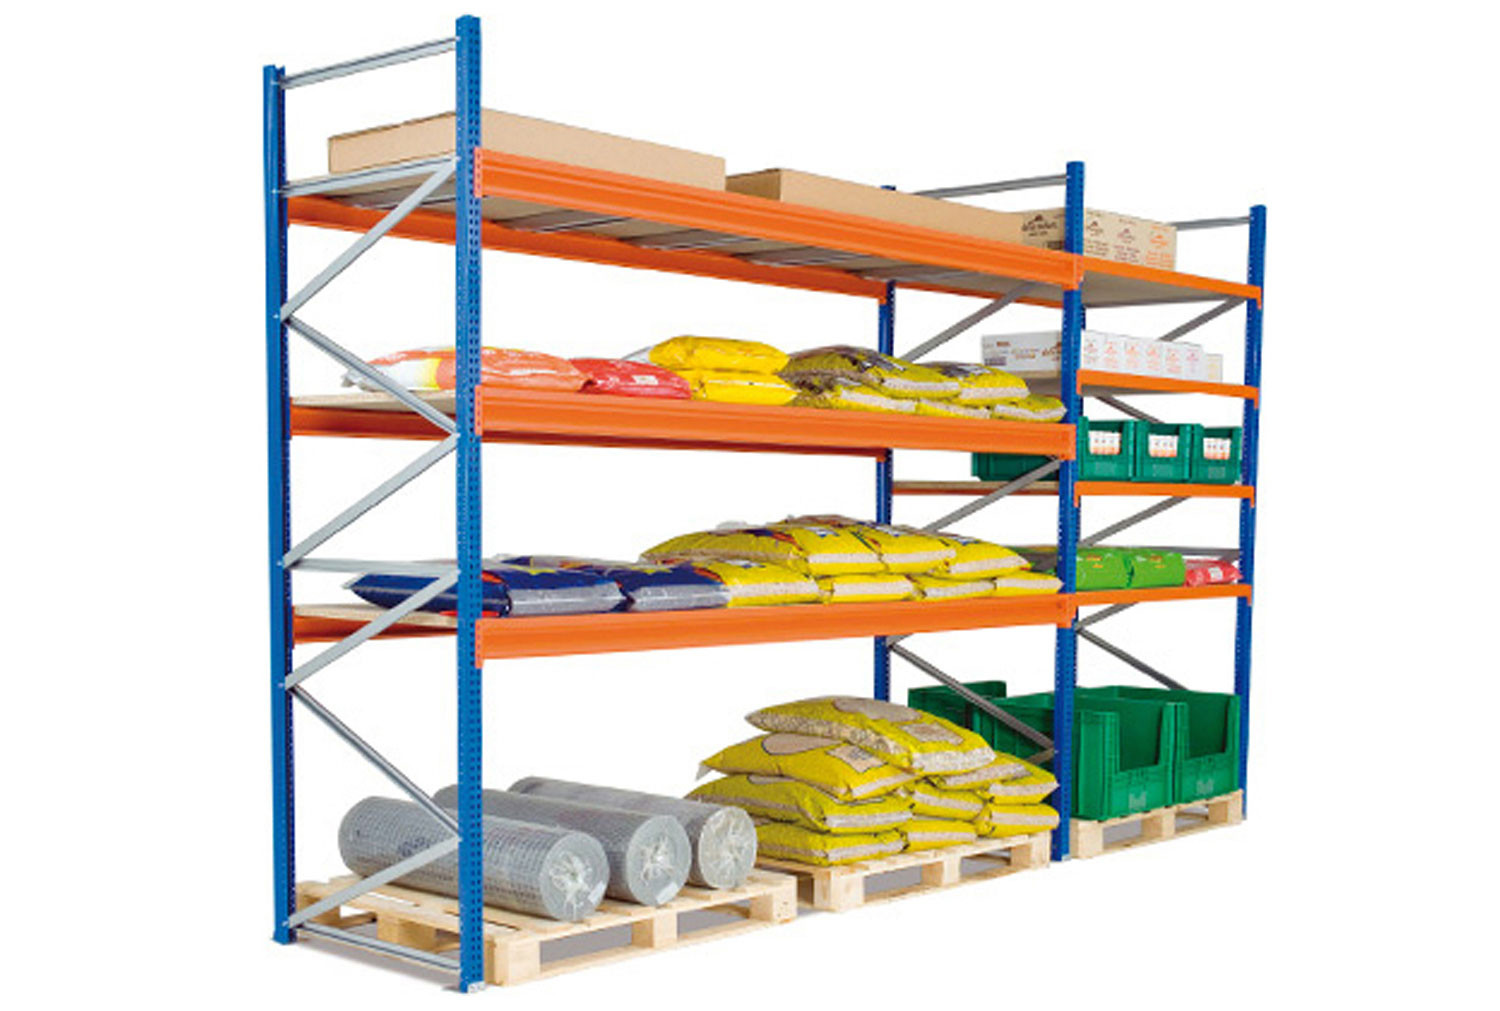 Heavy Duty Widespan Shelving With Galvanized Steel Shelves 2675wx2000h